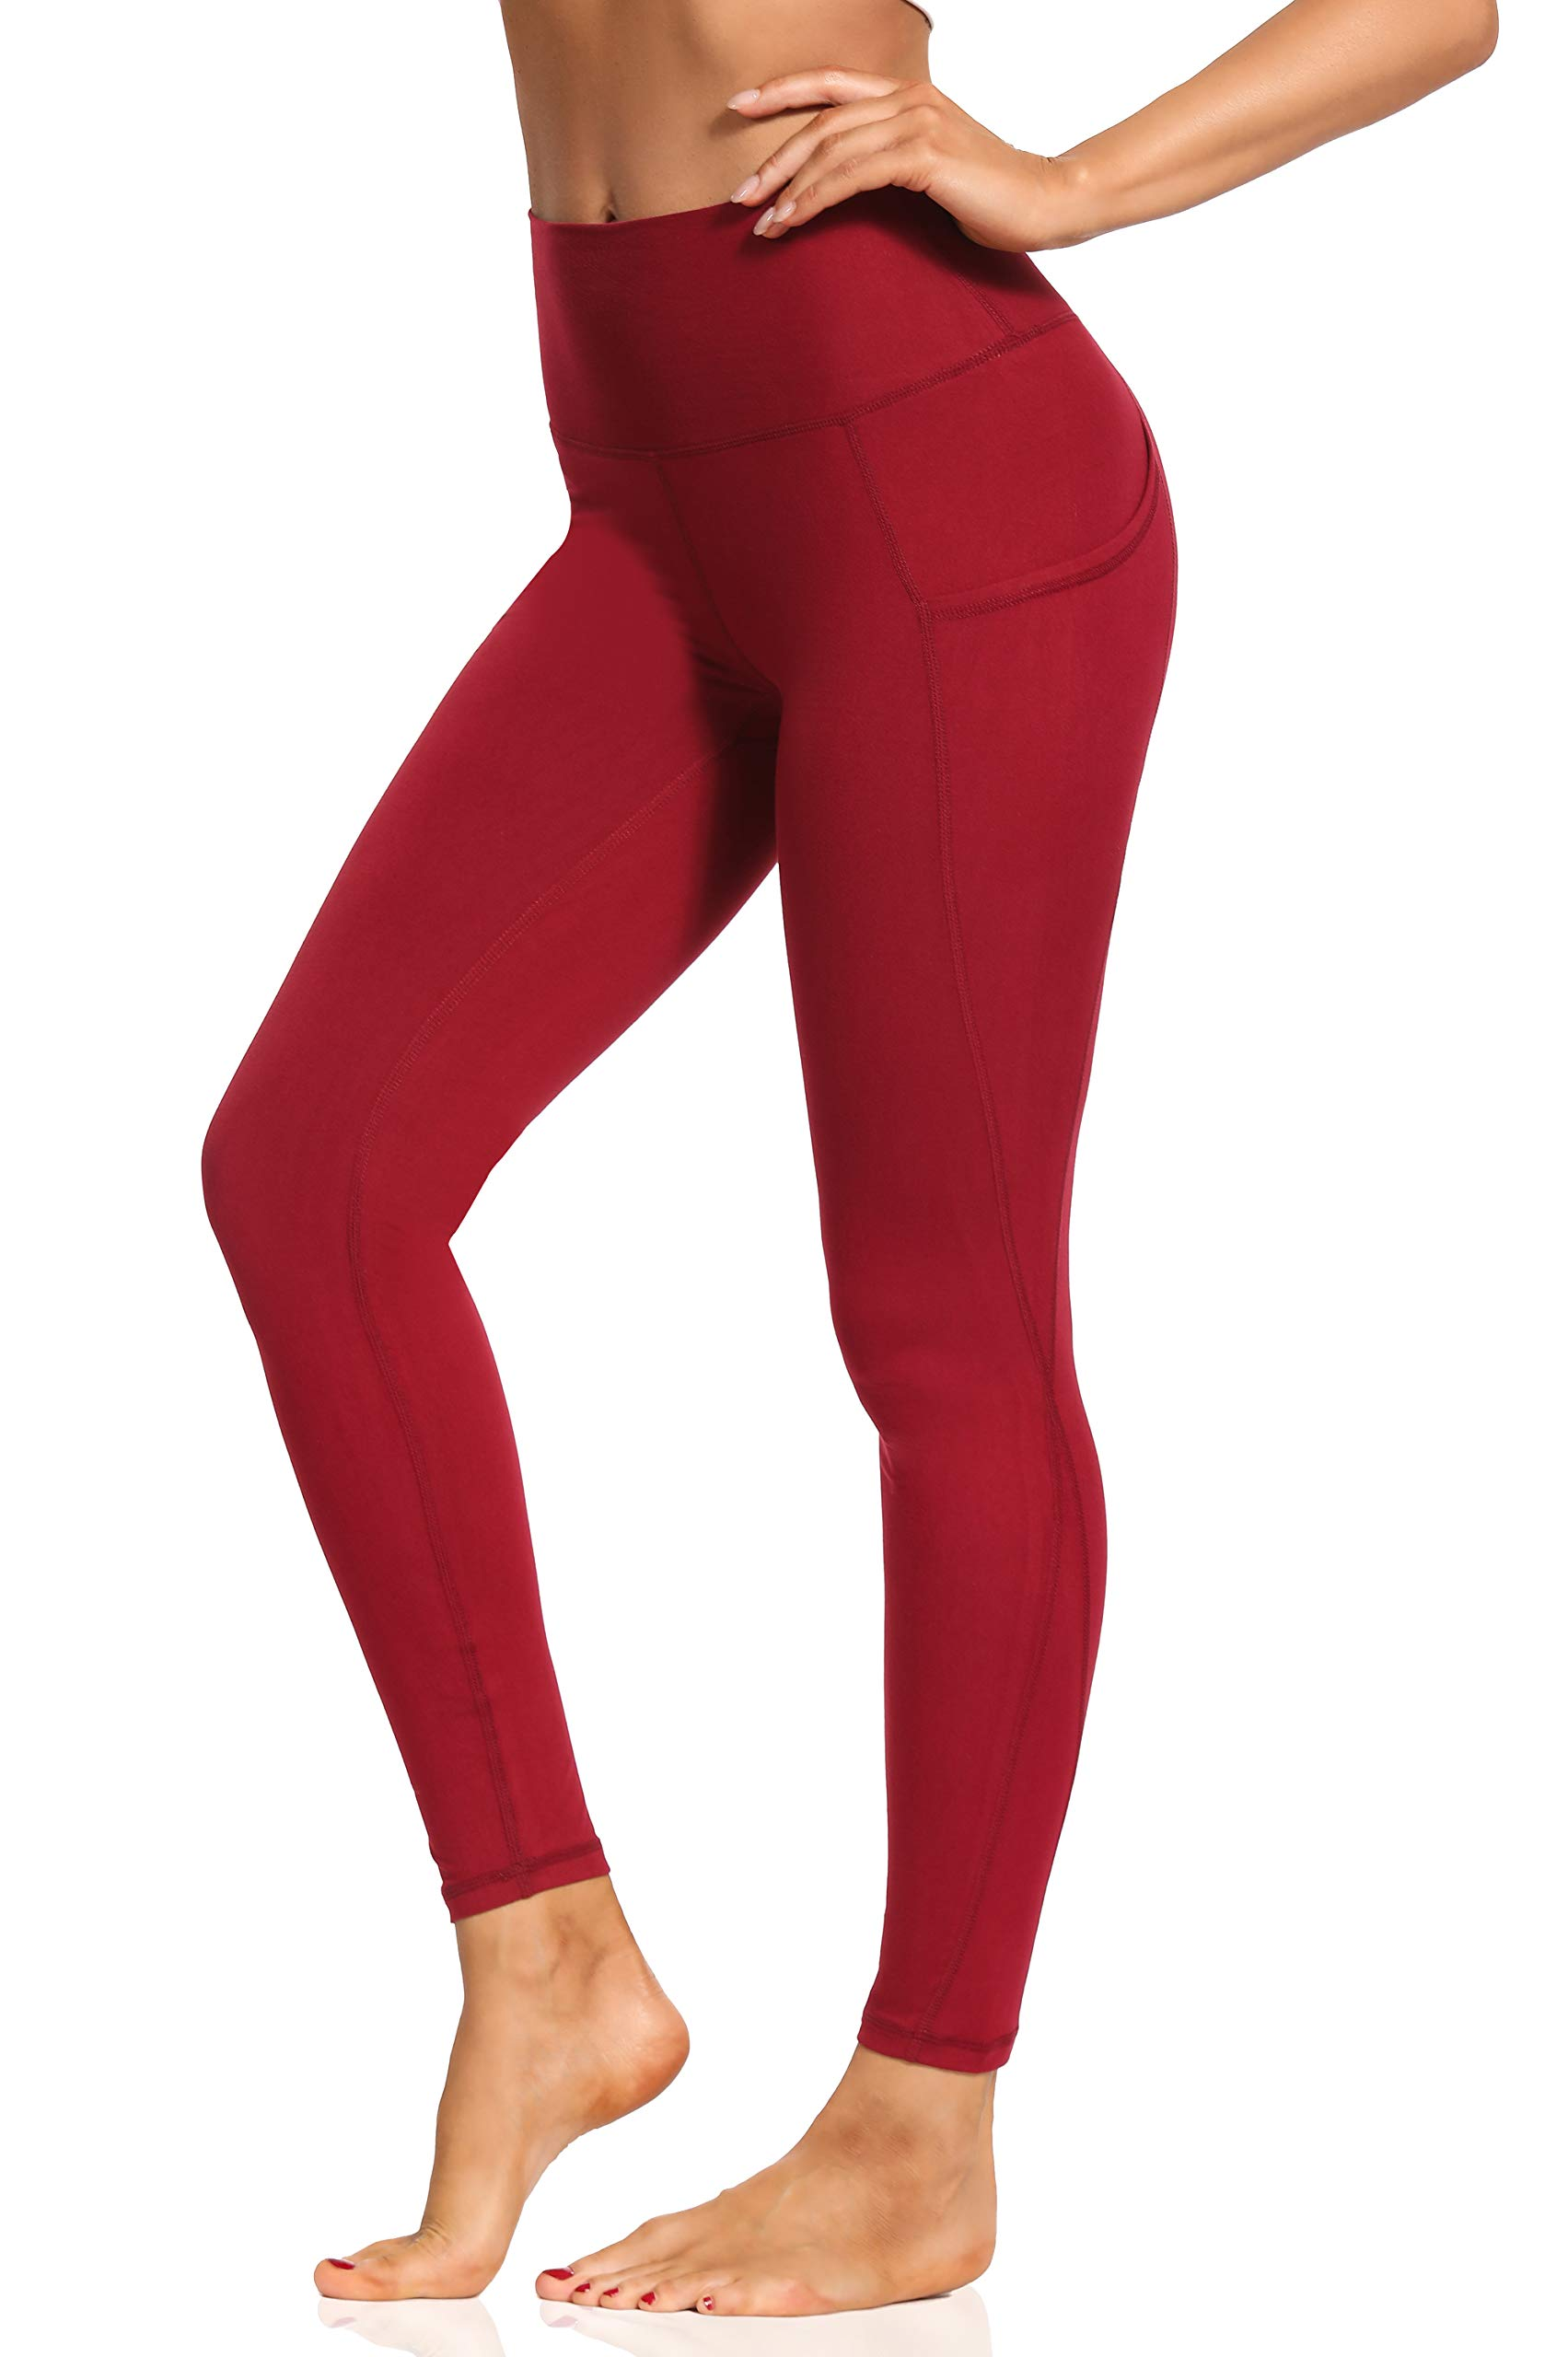 Foucome Buttery Soft Women's Leggings High Waisted Yoga Pants with Pockets Tummy Control Workout Tights